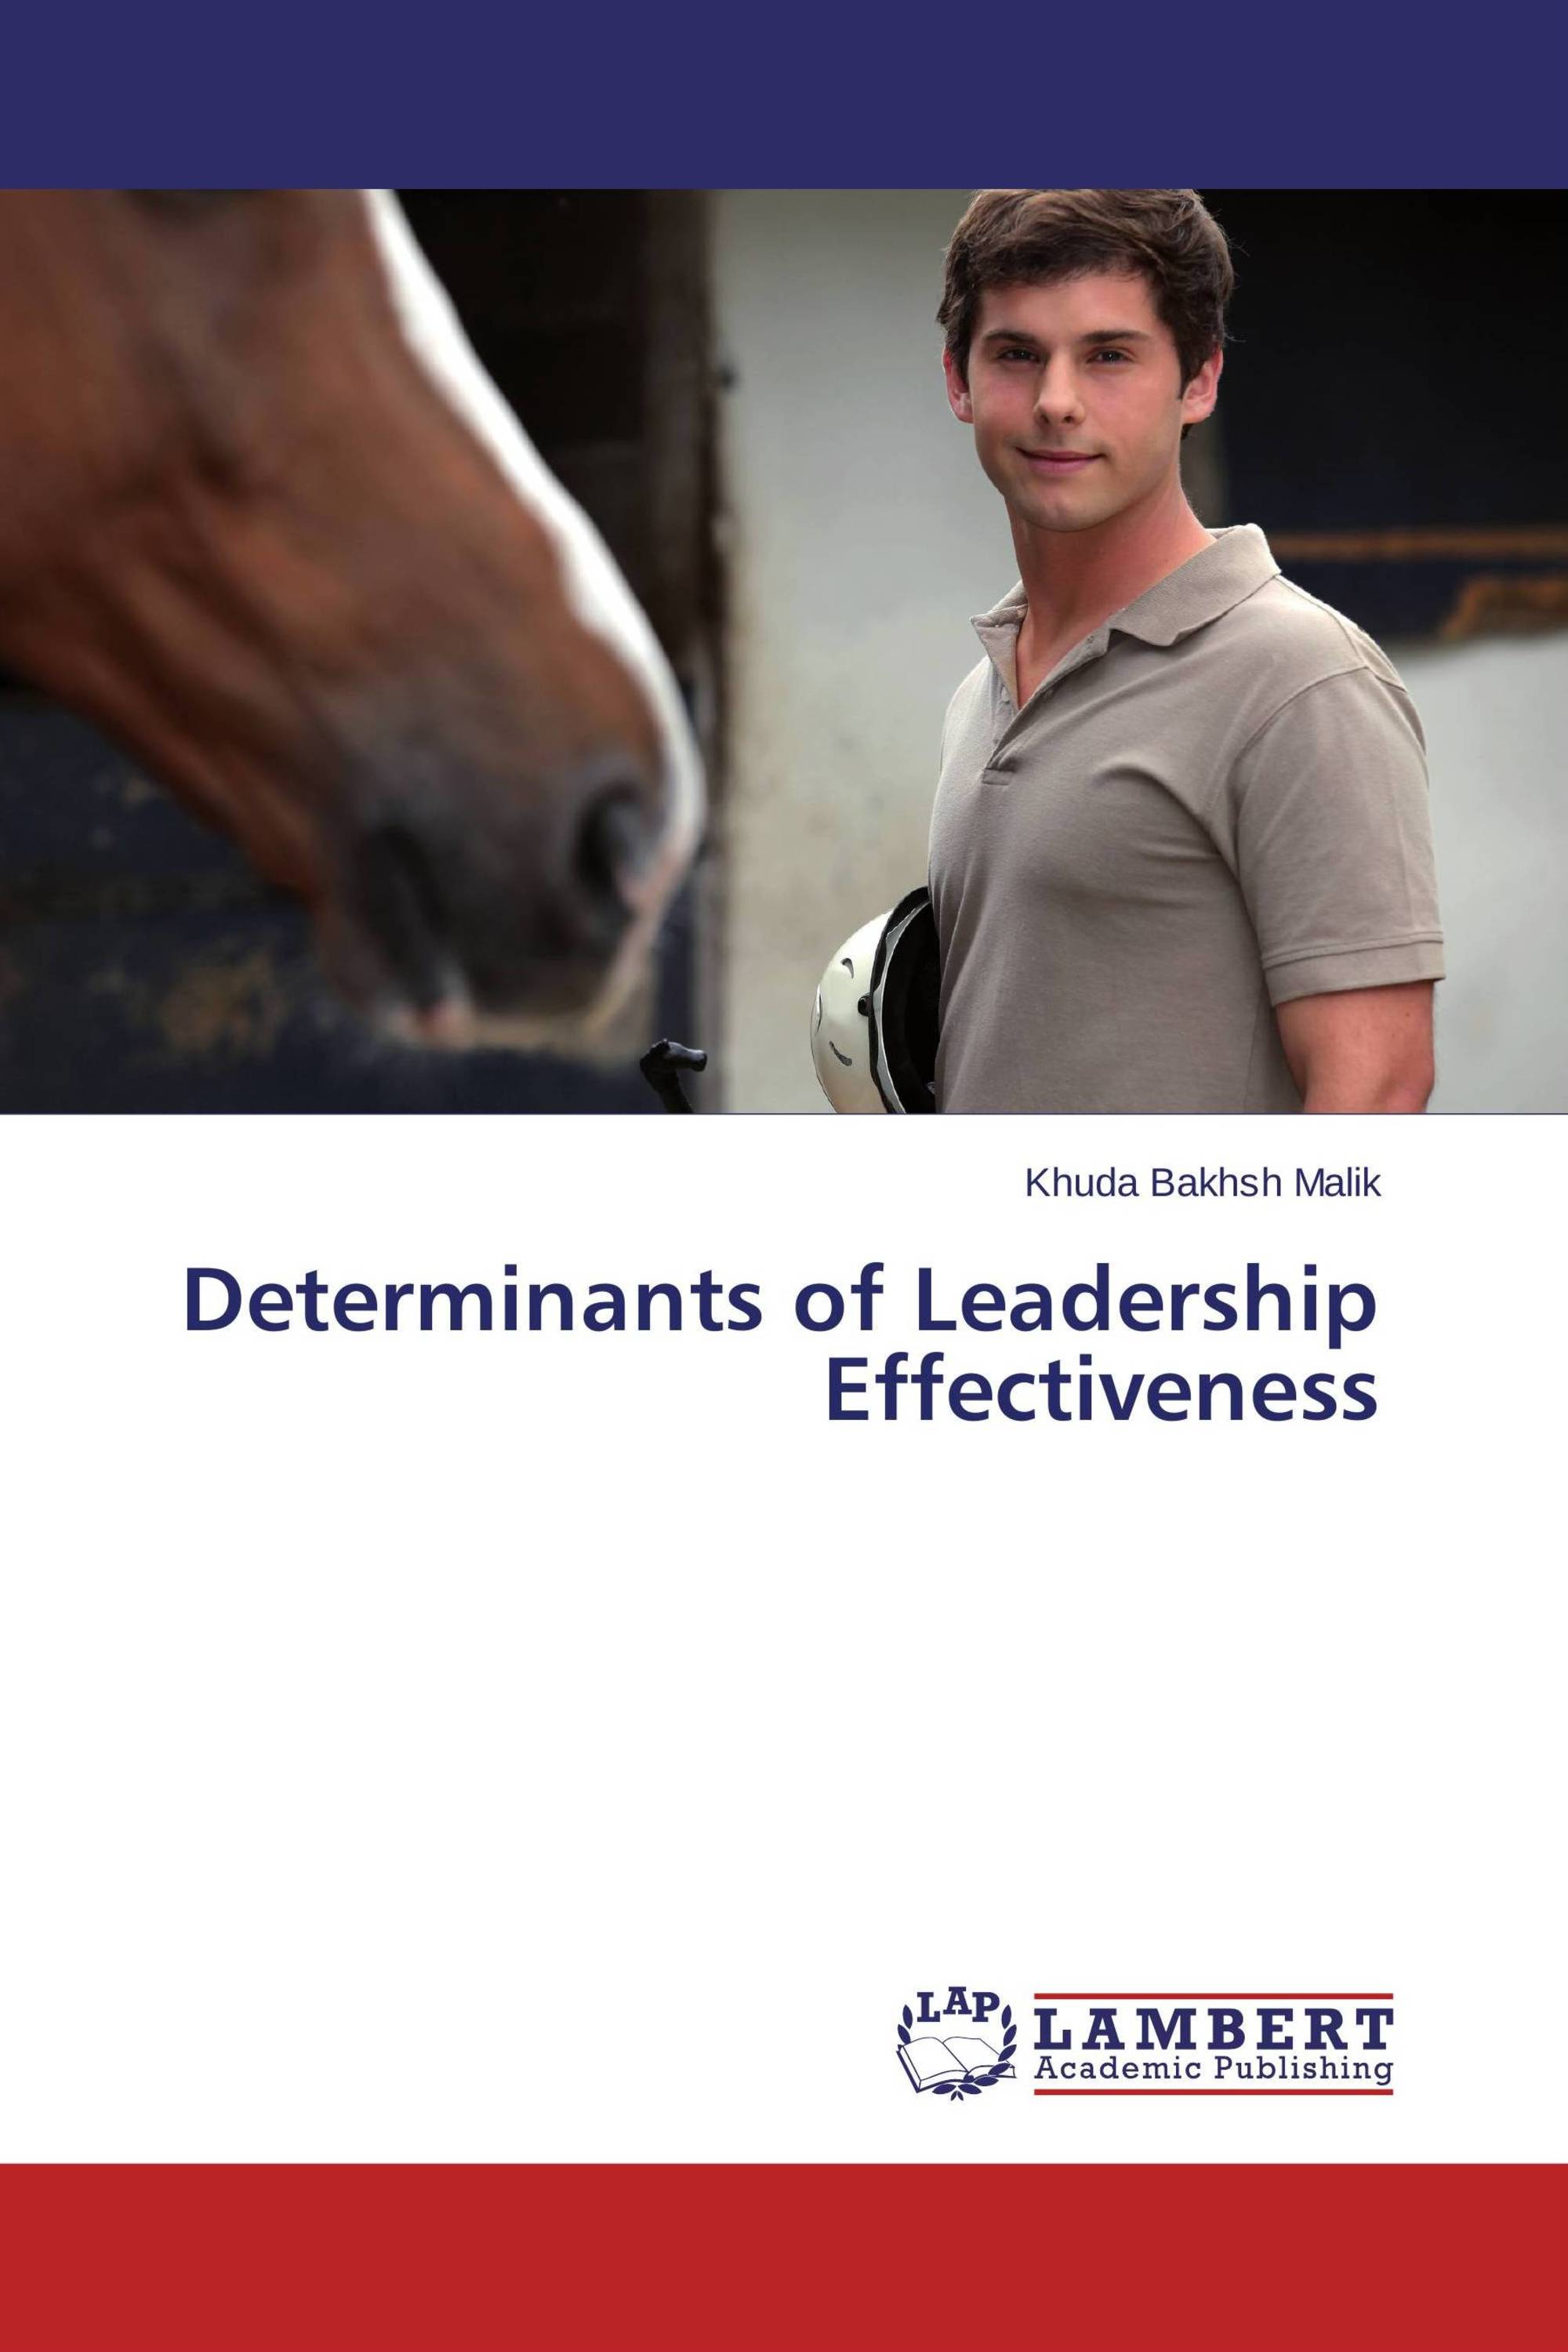 analysing leadership and determinants of leadership effectiveness The determinants of leadership role occupancy: genetic and personality factors  in leadership emergence or leadership effectiveness has sometimes been viewed with .